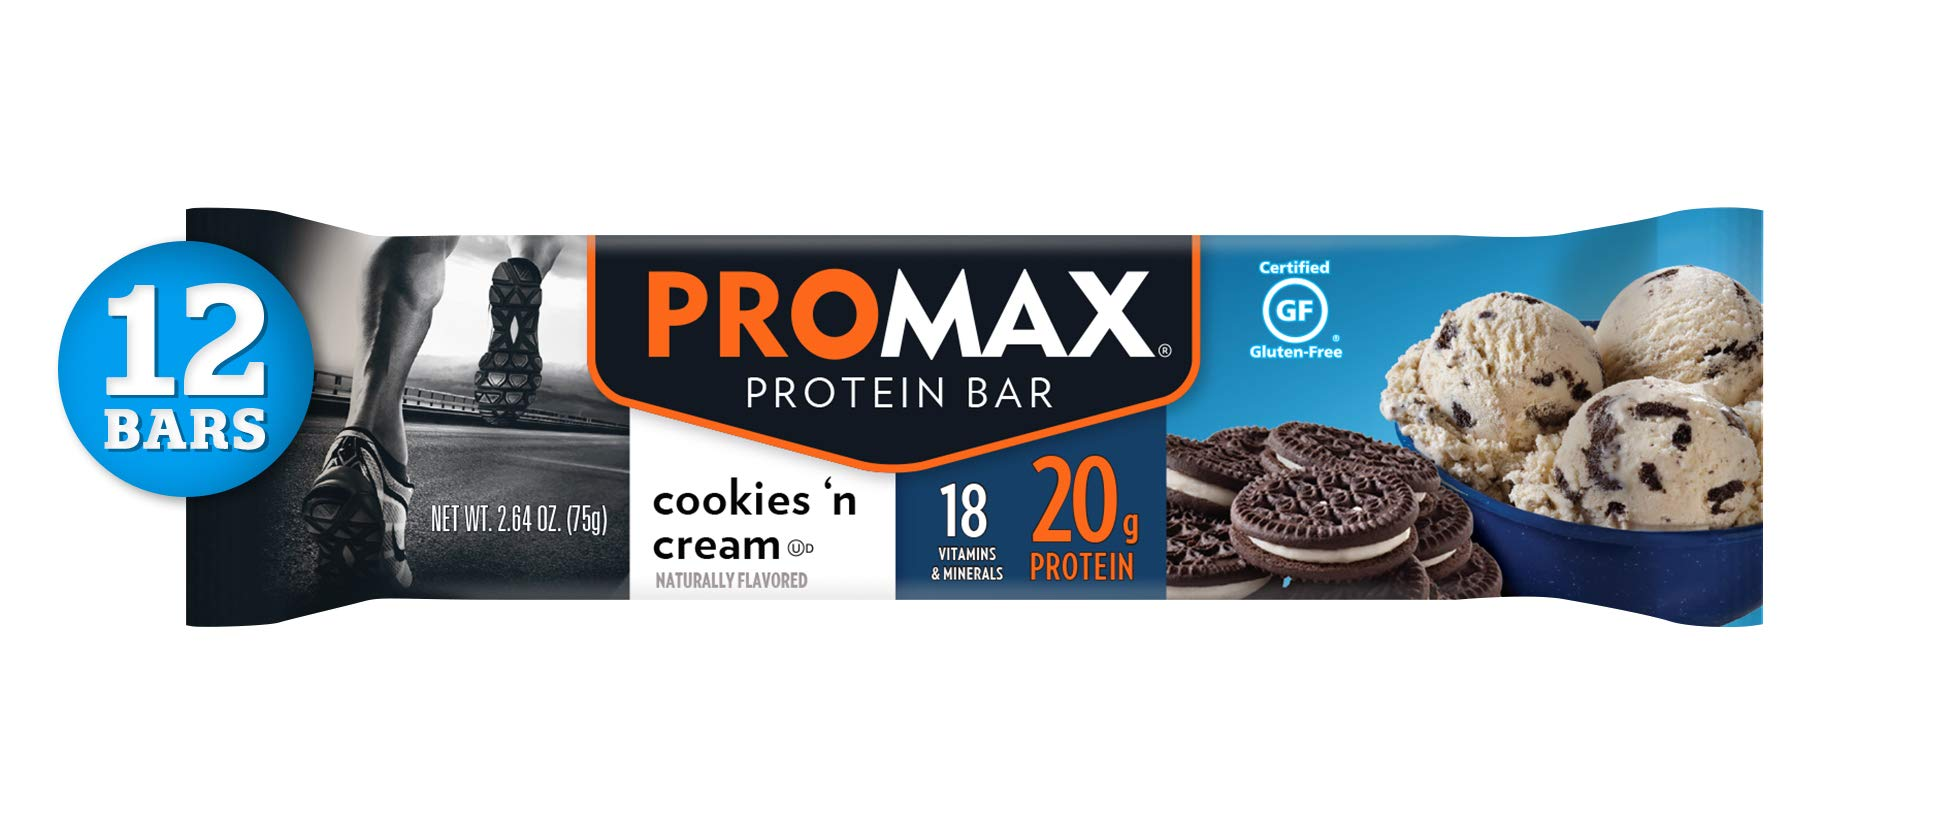 Promax Cookies 'n Cream, 20g High Protein, No Artificial Ingredients, Gluten Free, 12 Count by Promax